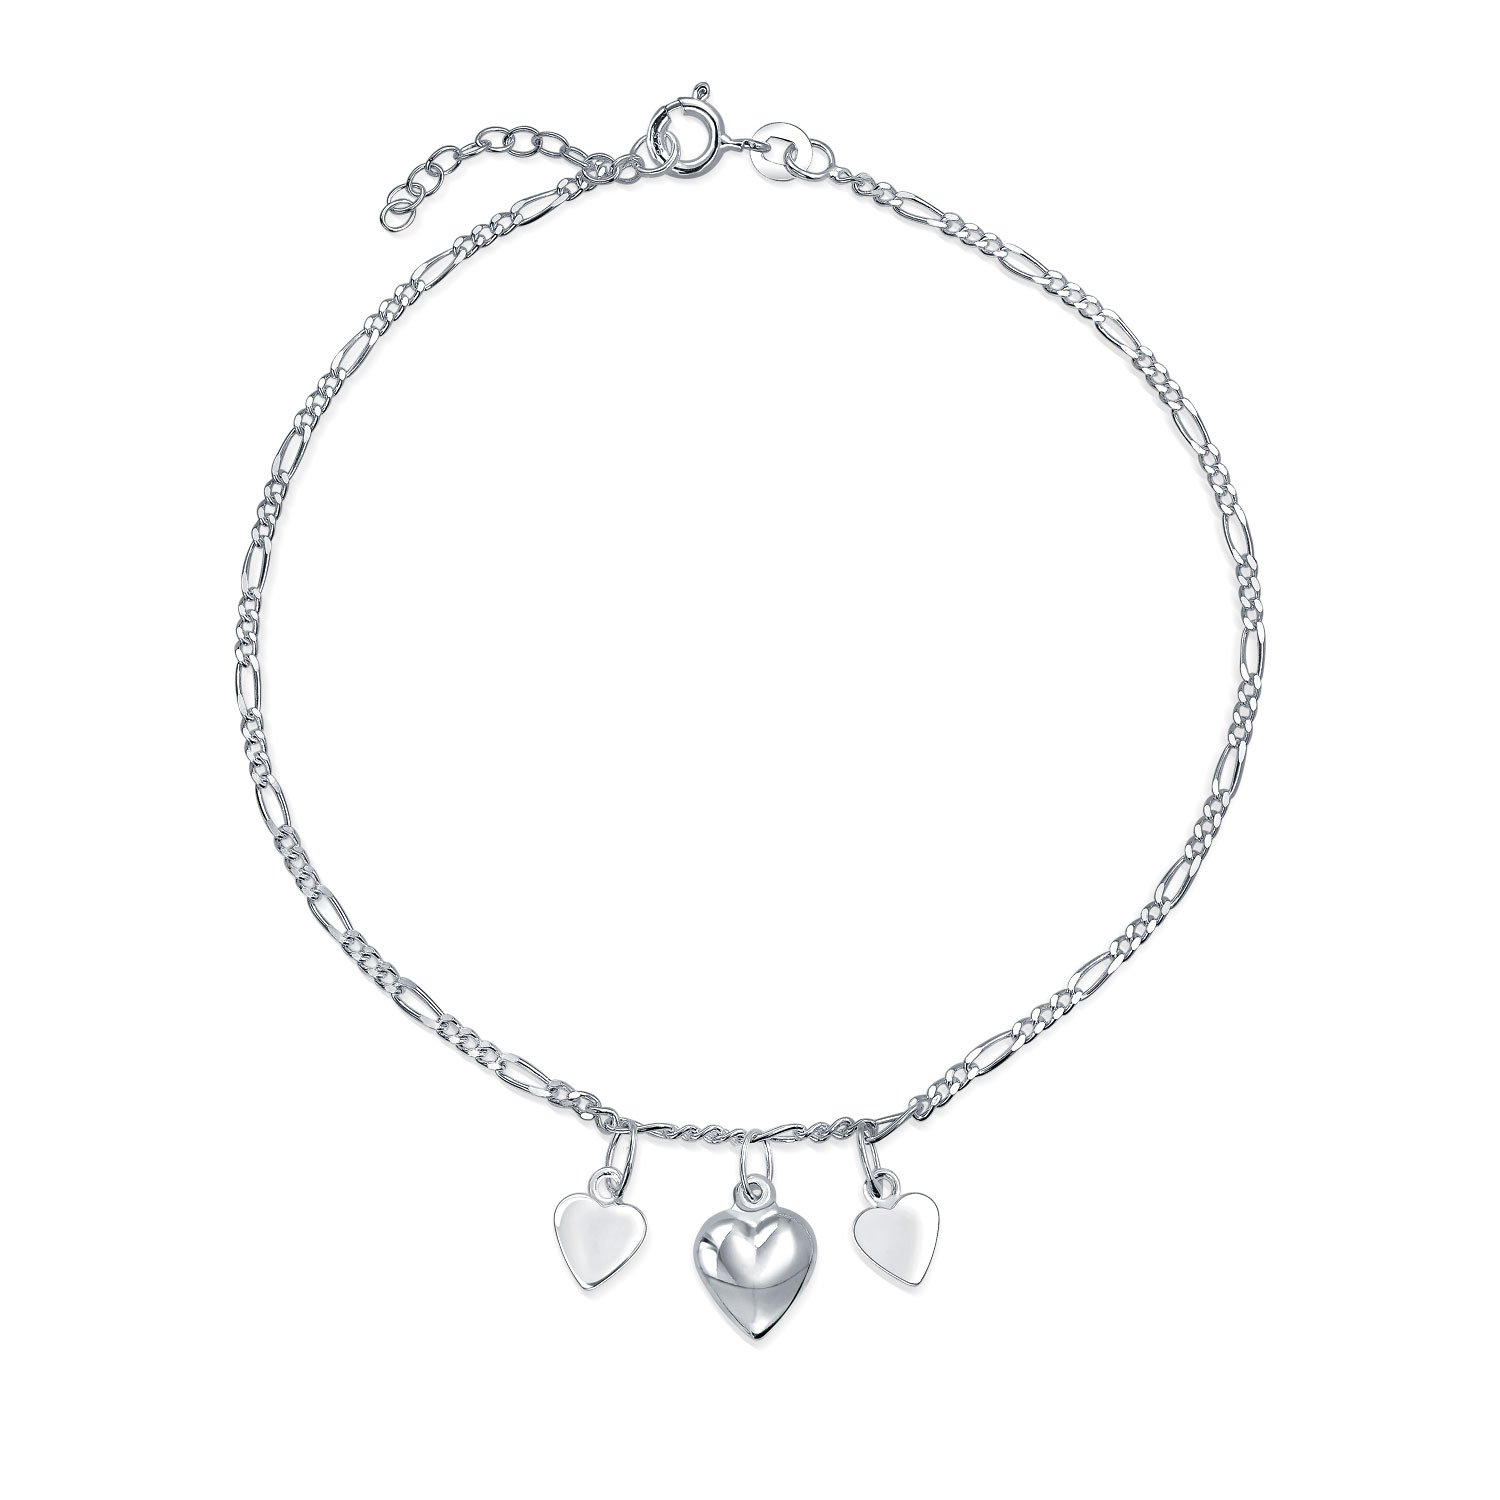 Bling Jewelry 925 Silver Heart Ankle Bracelet Adjustable Anklet 9in APPL-JA-121240